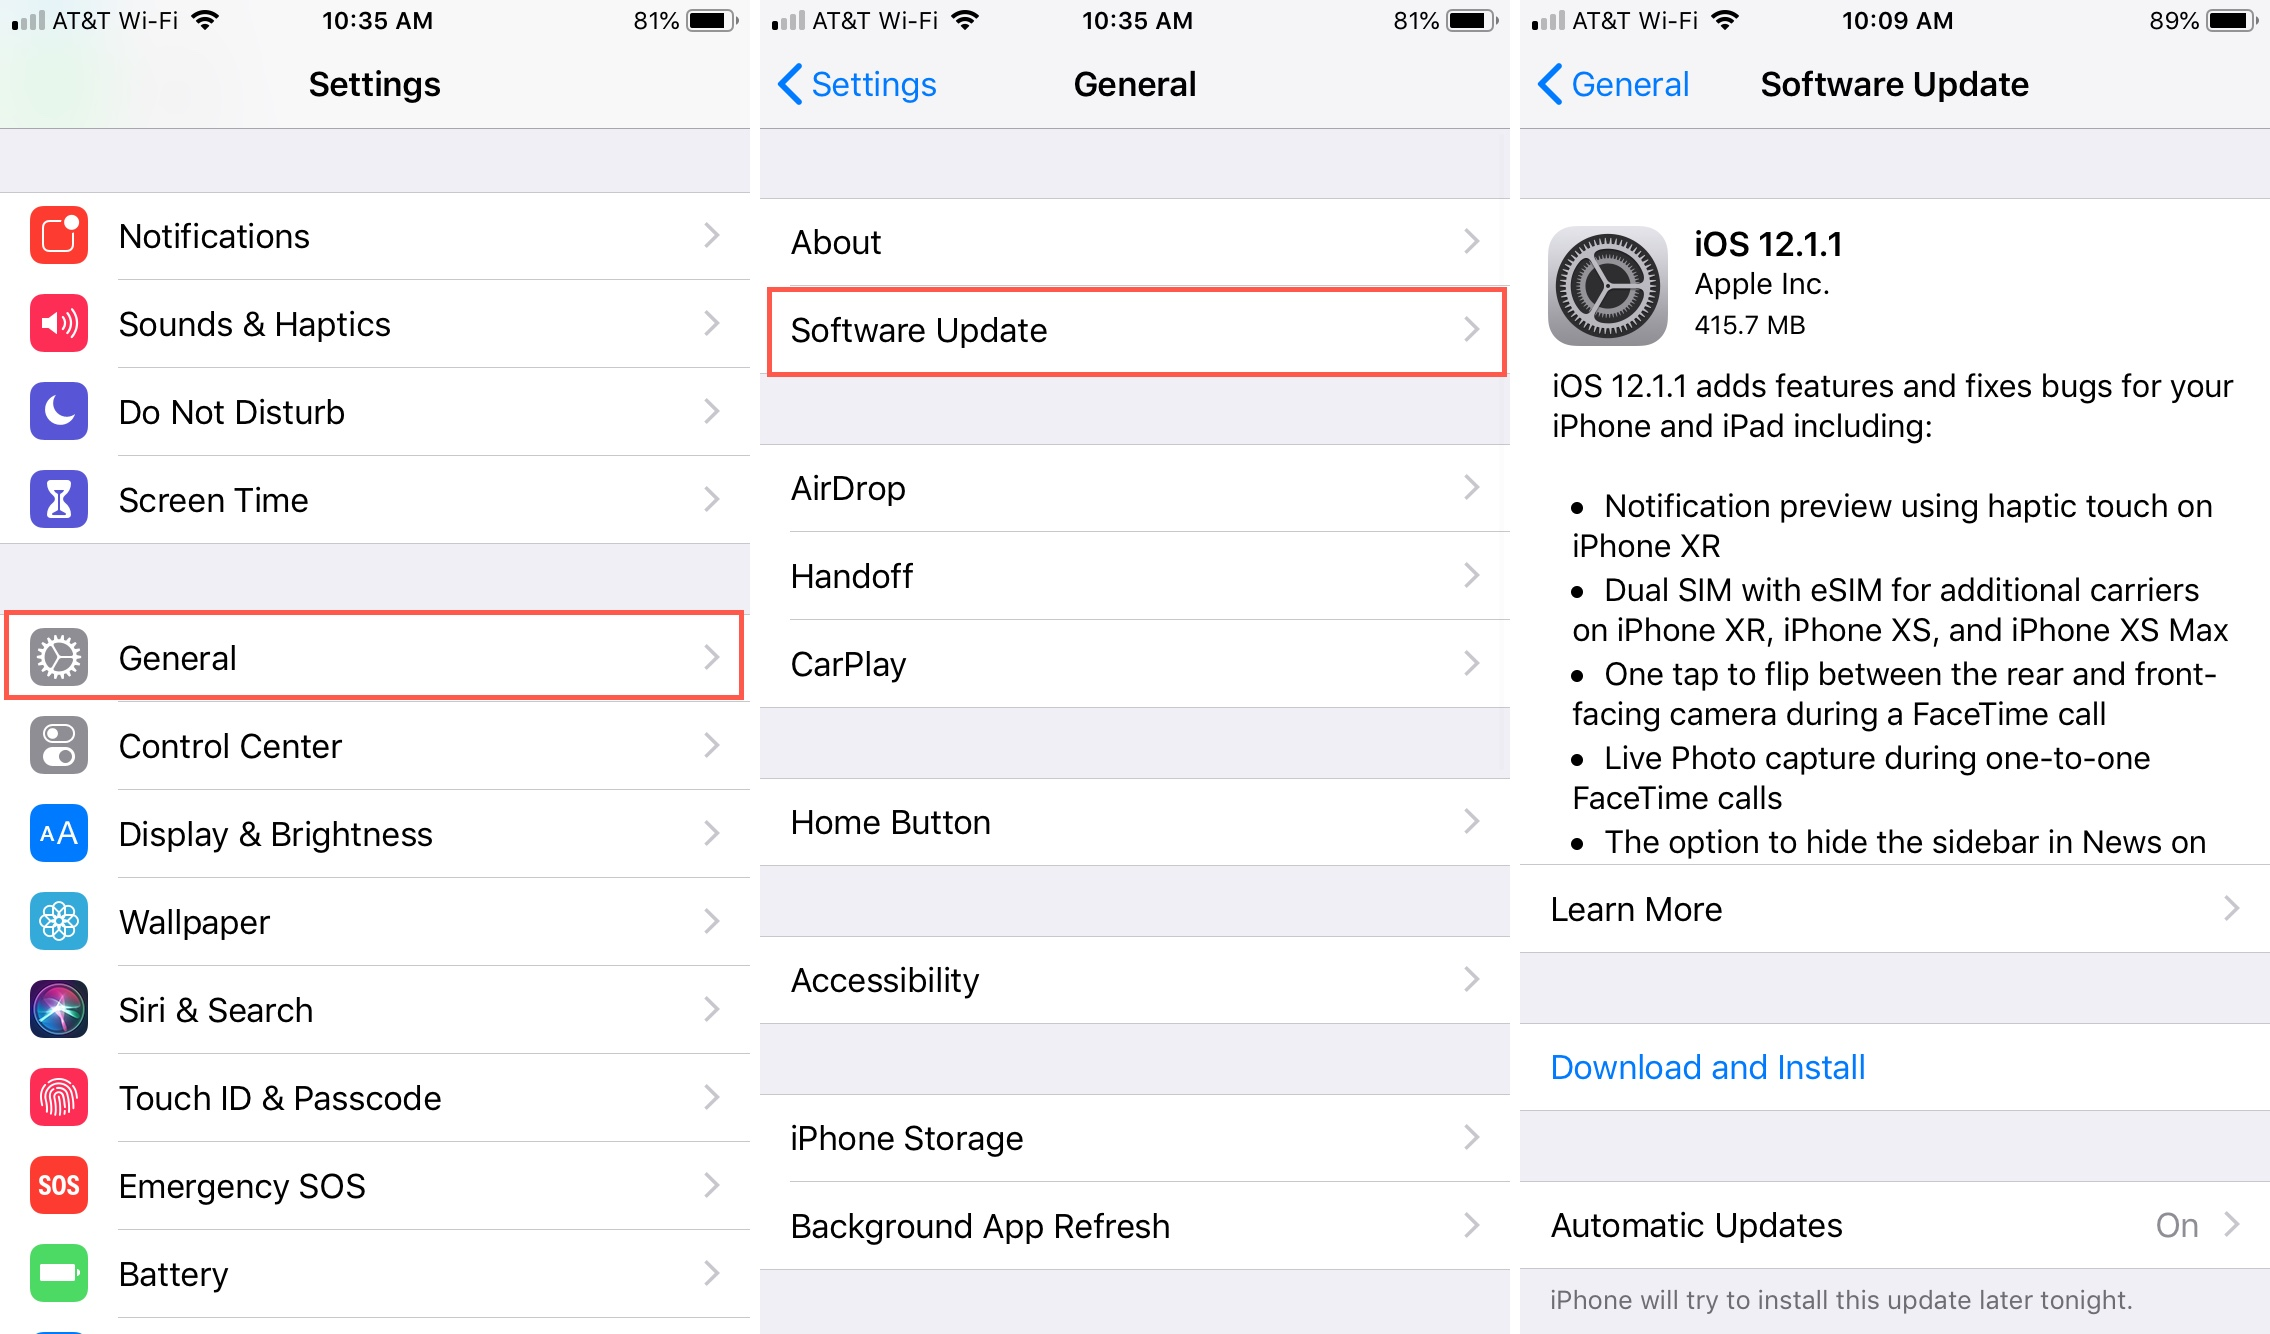 Software Update in iPhone Settings